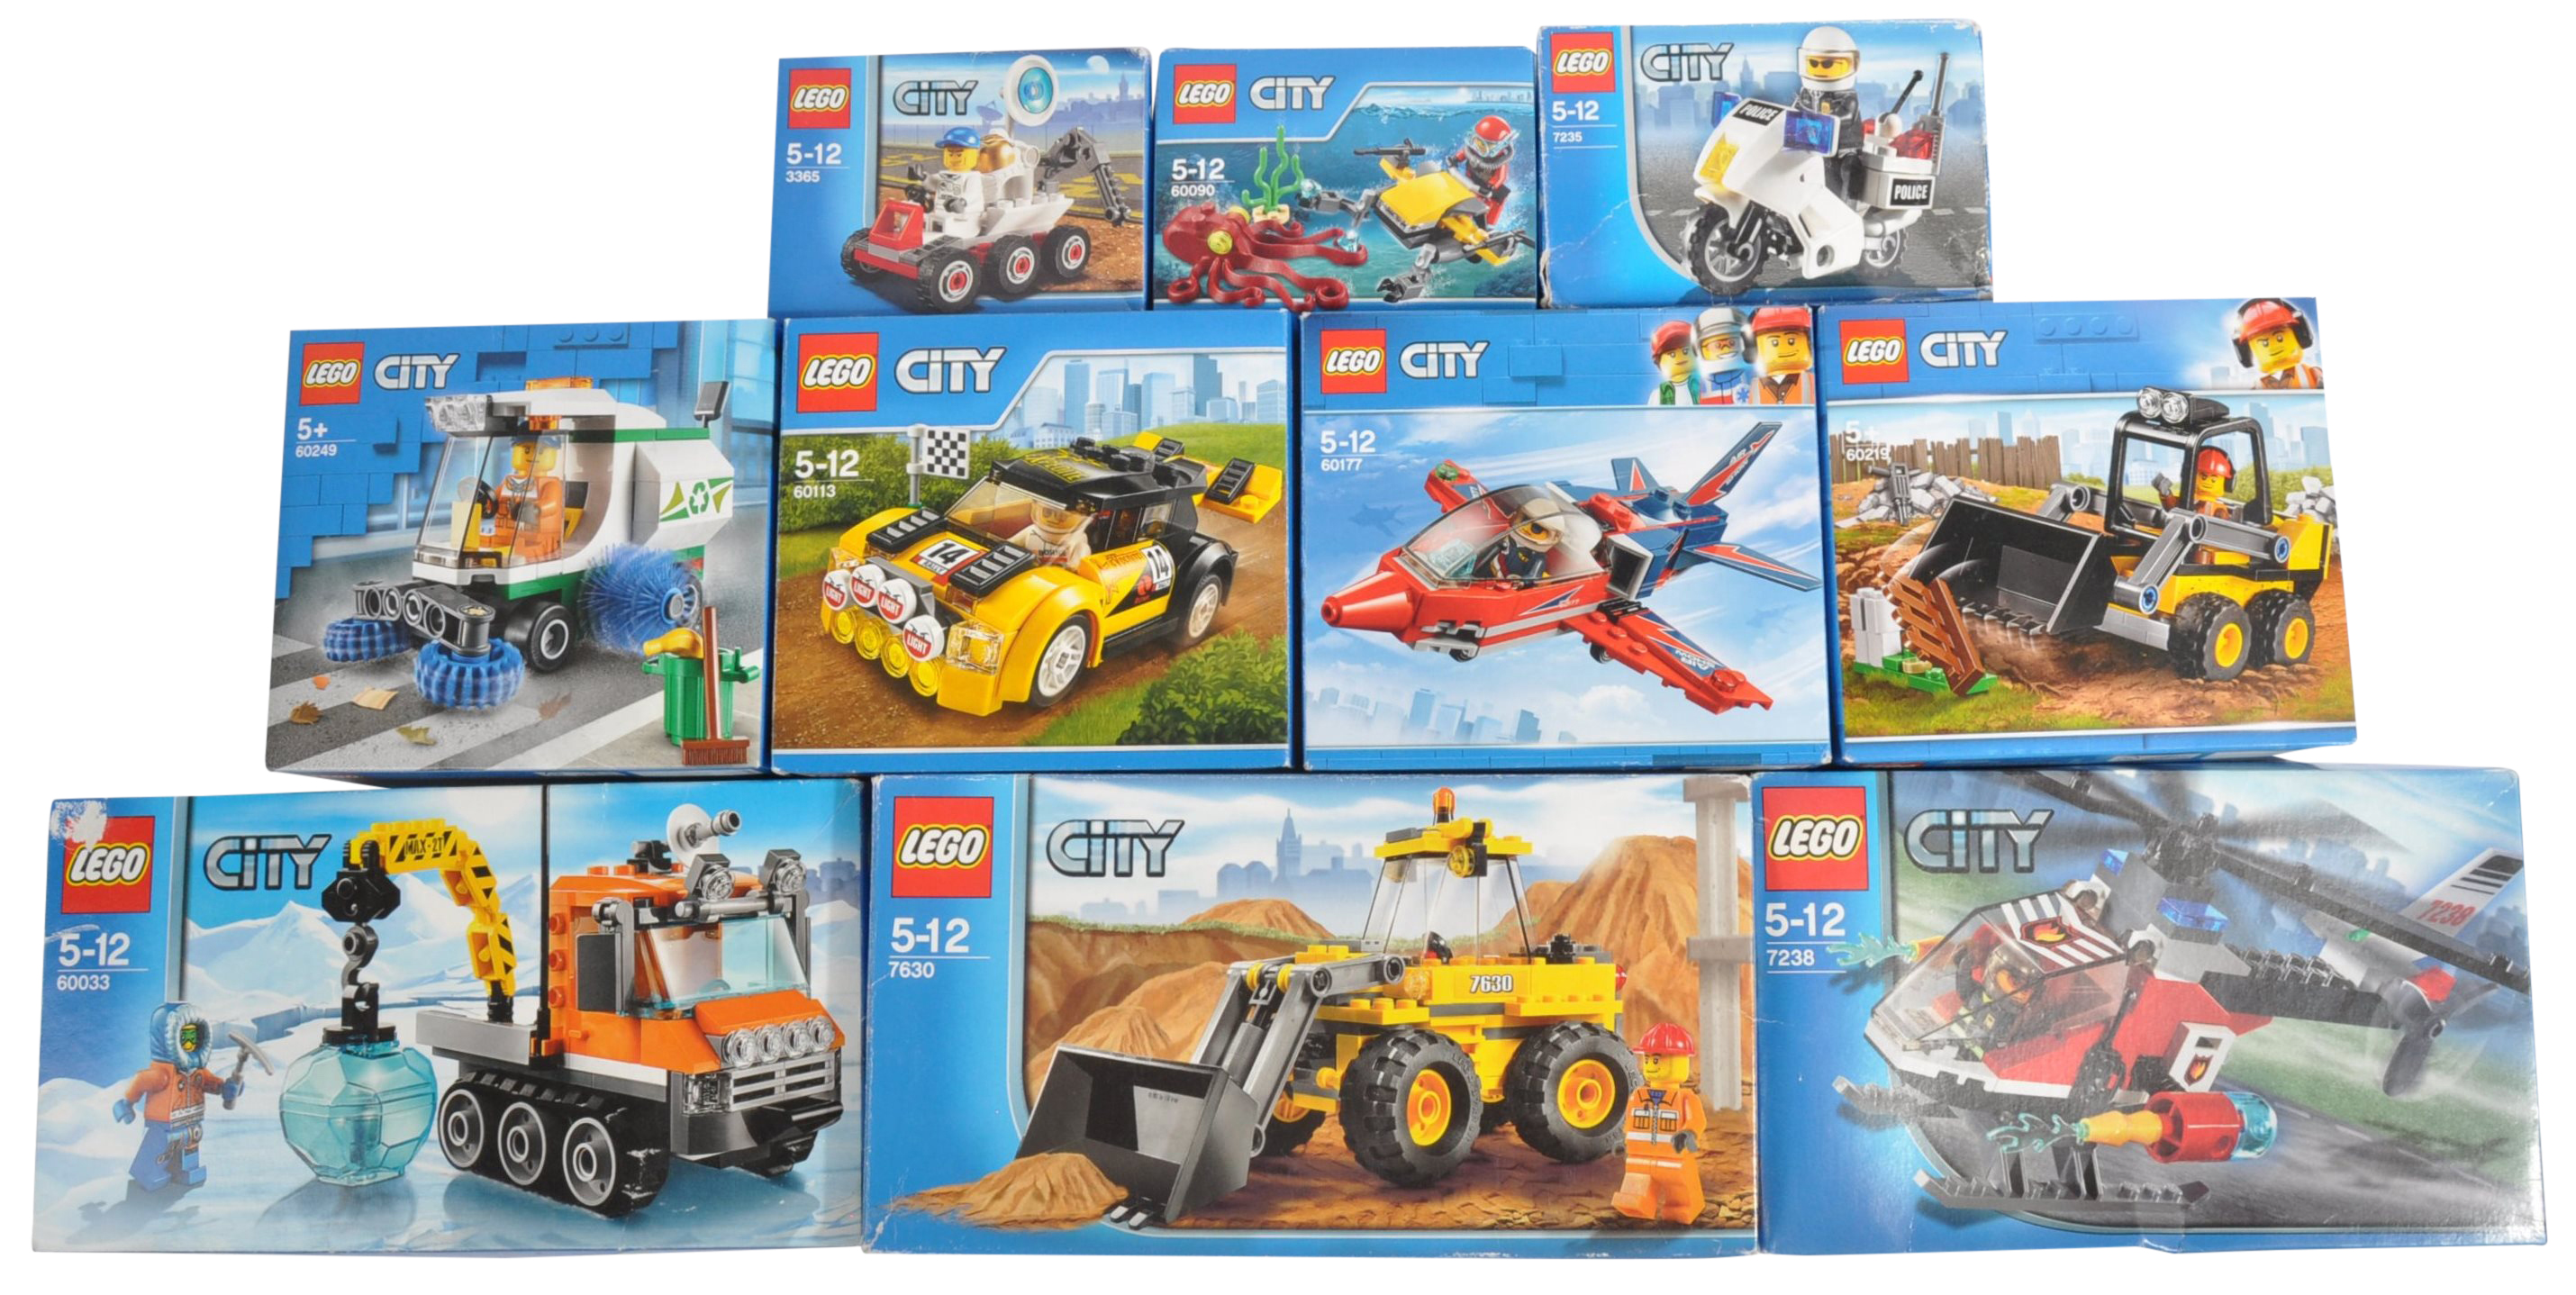 LEGO SETS - LEGO CITY - A COLLECTION OF X10 LEGO CITY SETS